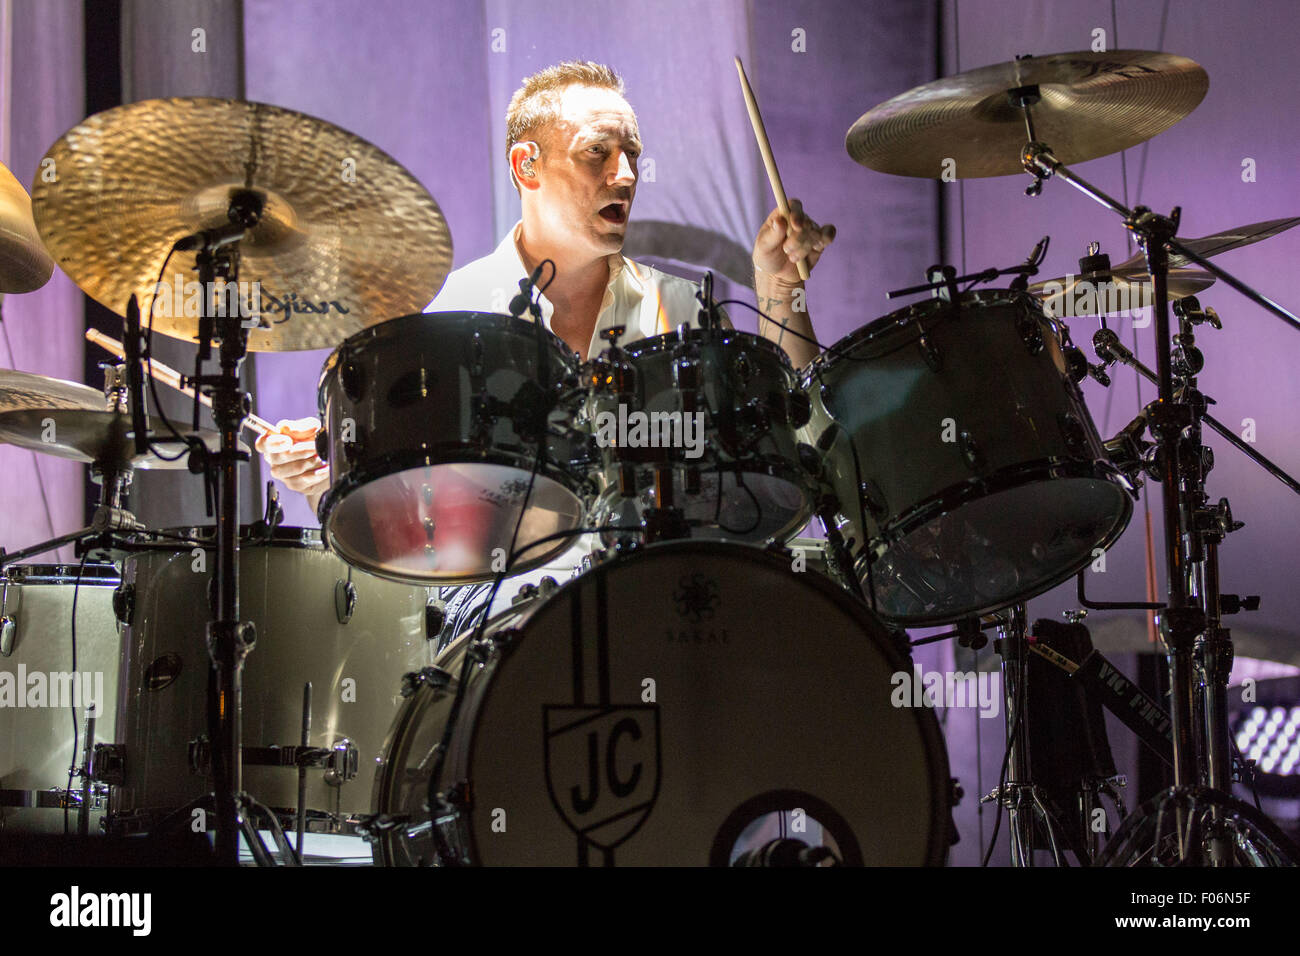 Chicago, Illinois, USA. 7th Aug, 2015. Drummer JIMMY CHAMBERLIN of The Smashing Pumpkins performs live at the FirstMerit - Stock Image